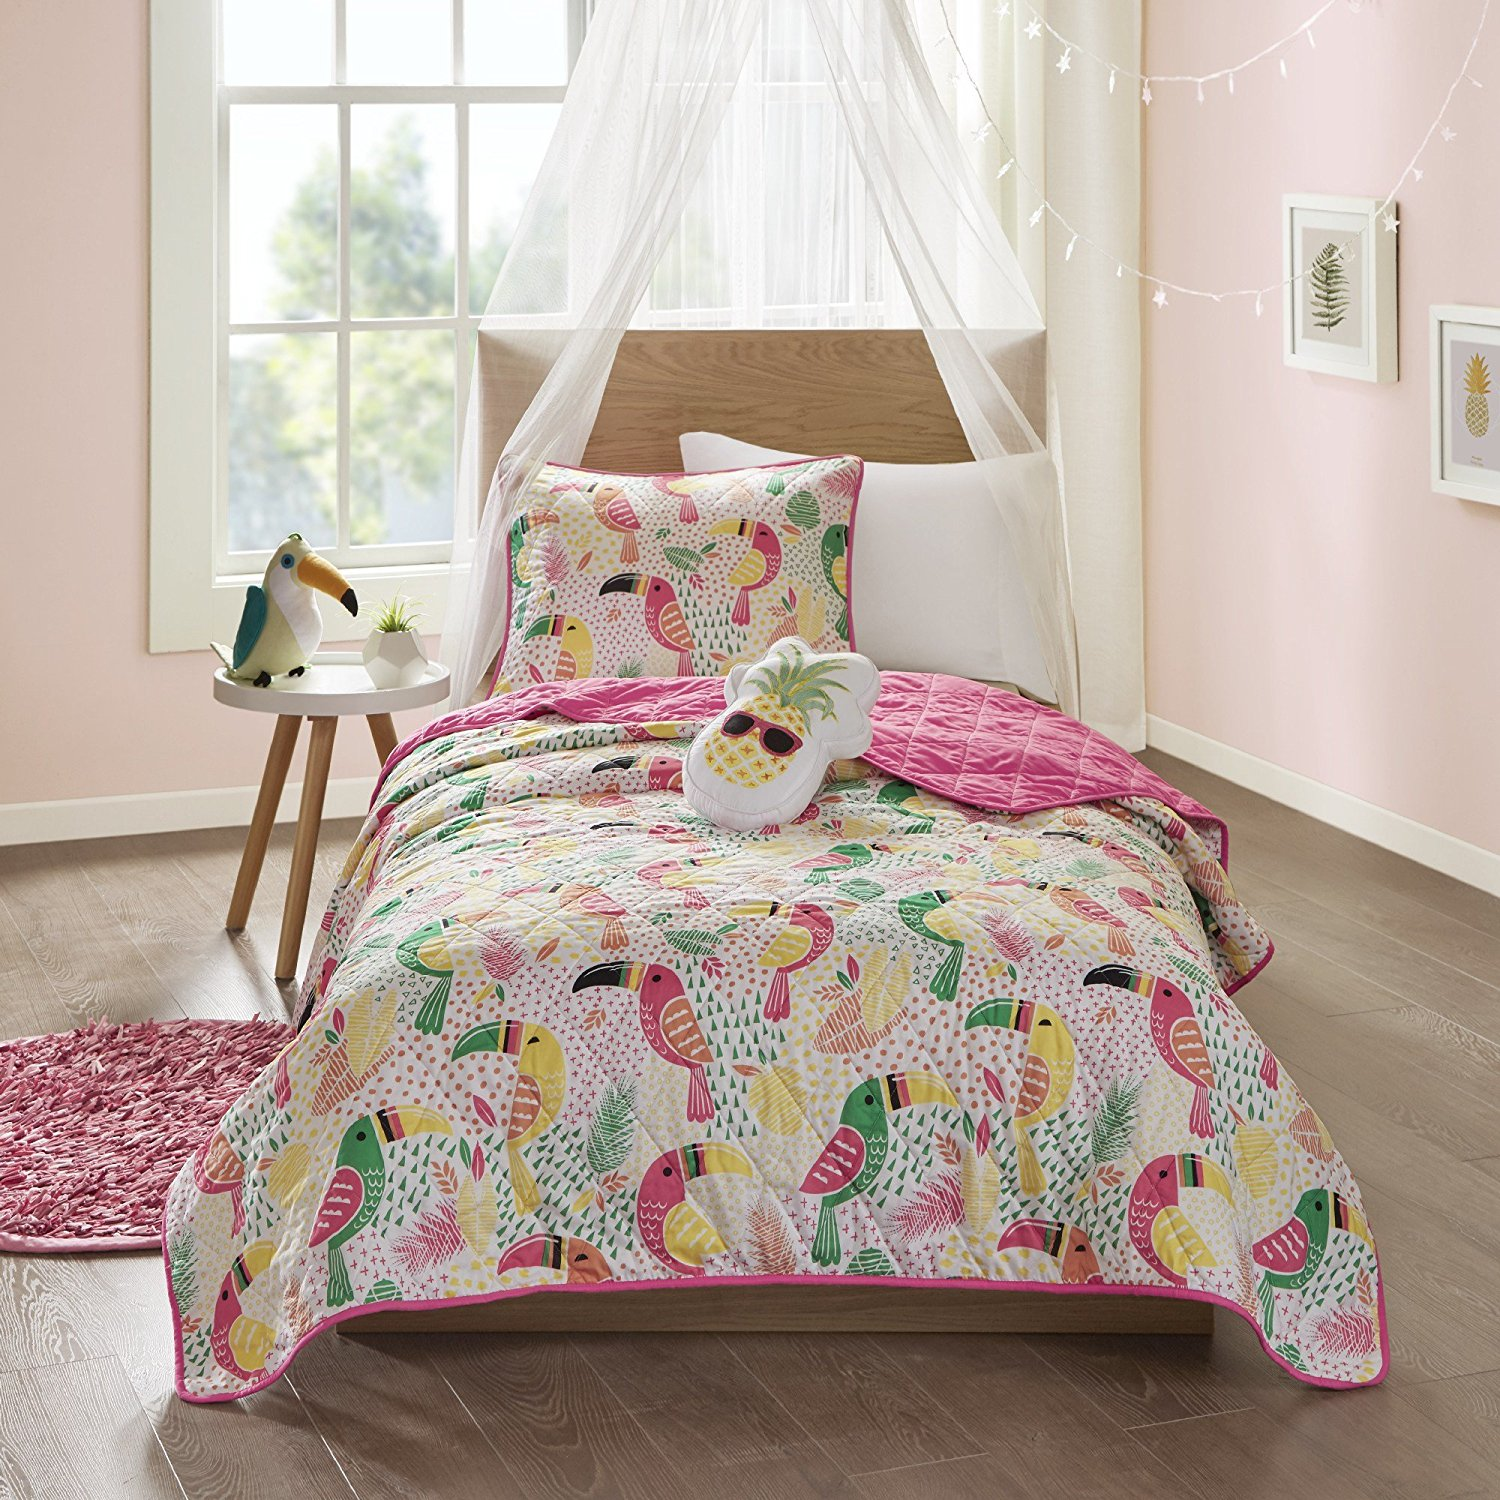 N2 3 Piece Girls White Yellow Green Pink Toucan Themed Coverlet Twin Set, All Over Tropical Birds Bedding, Fun Kids Multi Color Rain Forest Bird Geometric Botanical Leaf Pattern, Polyester